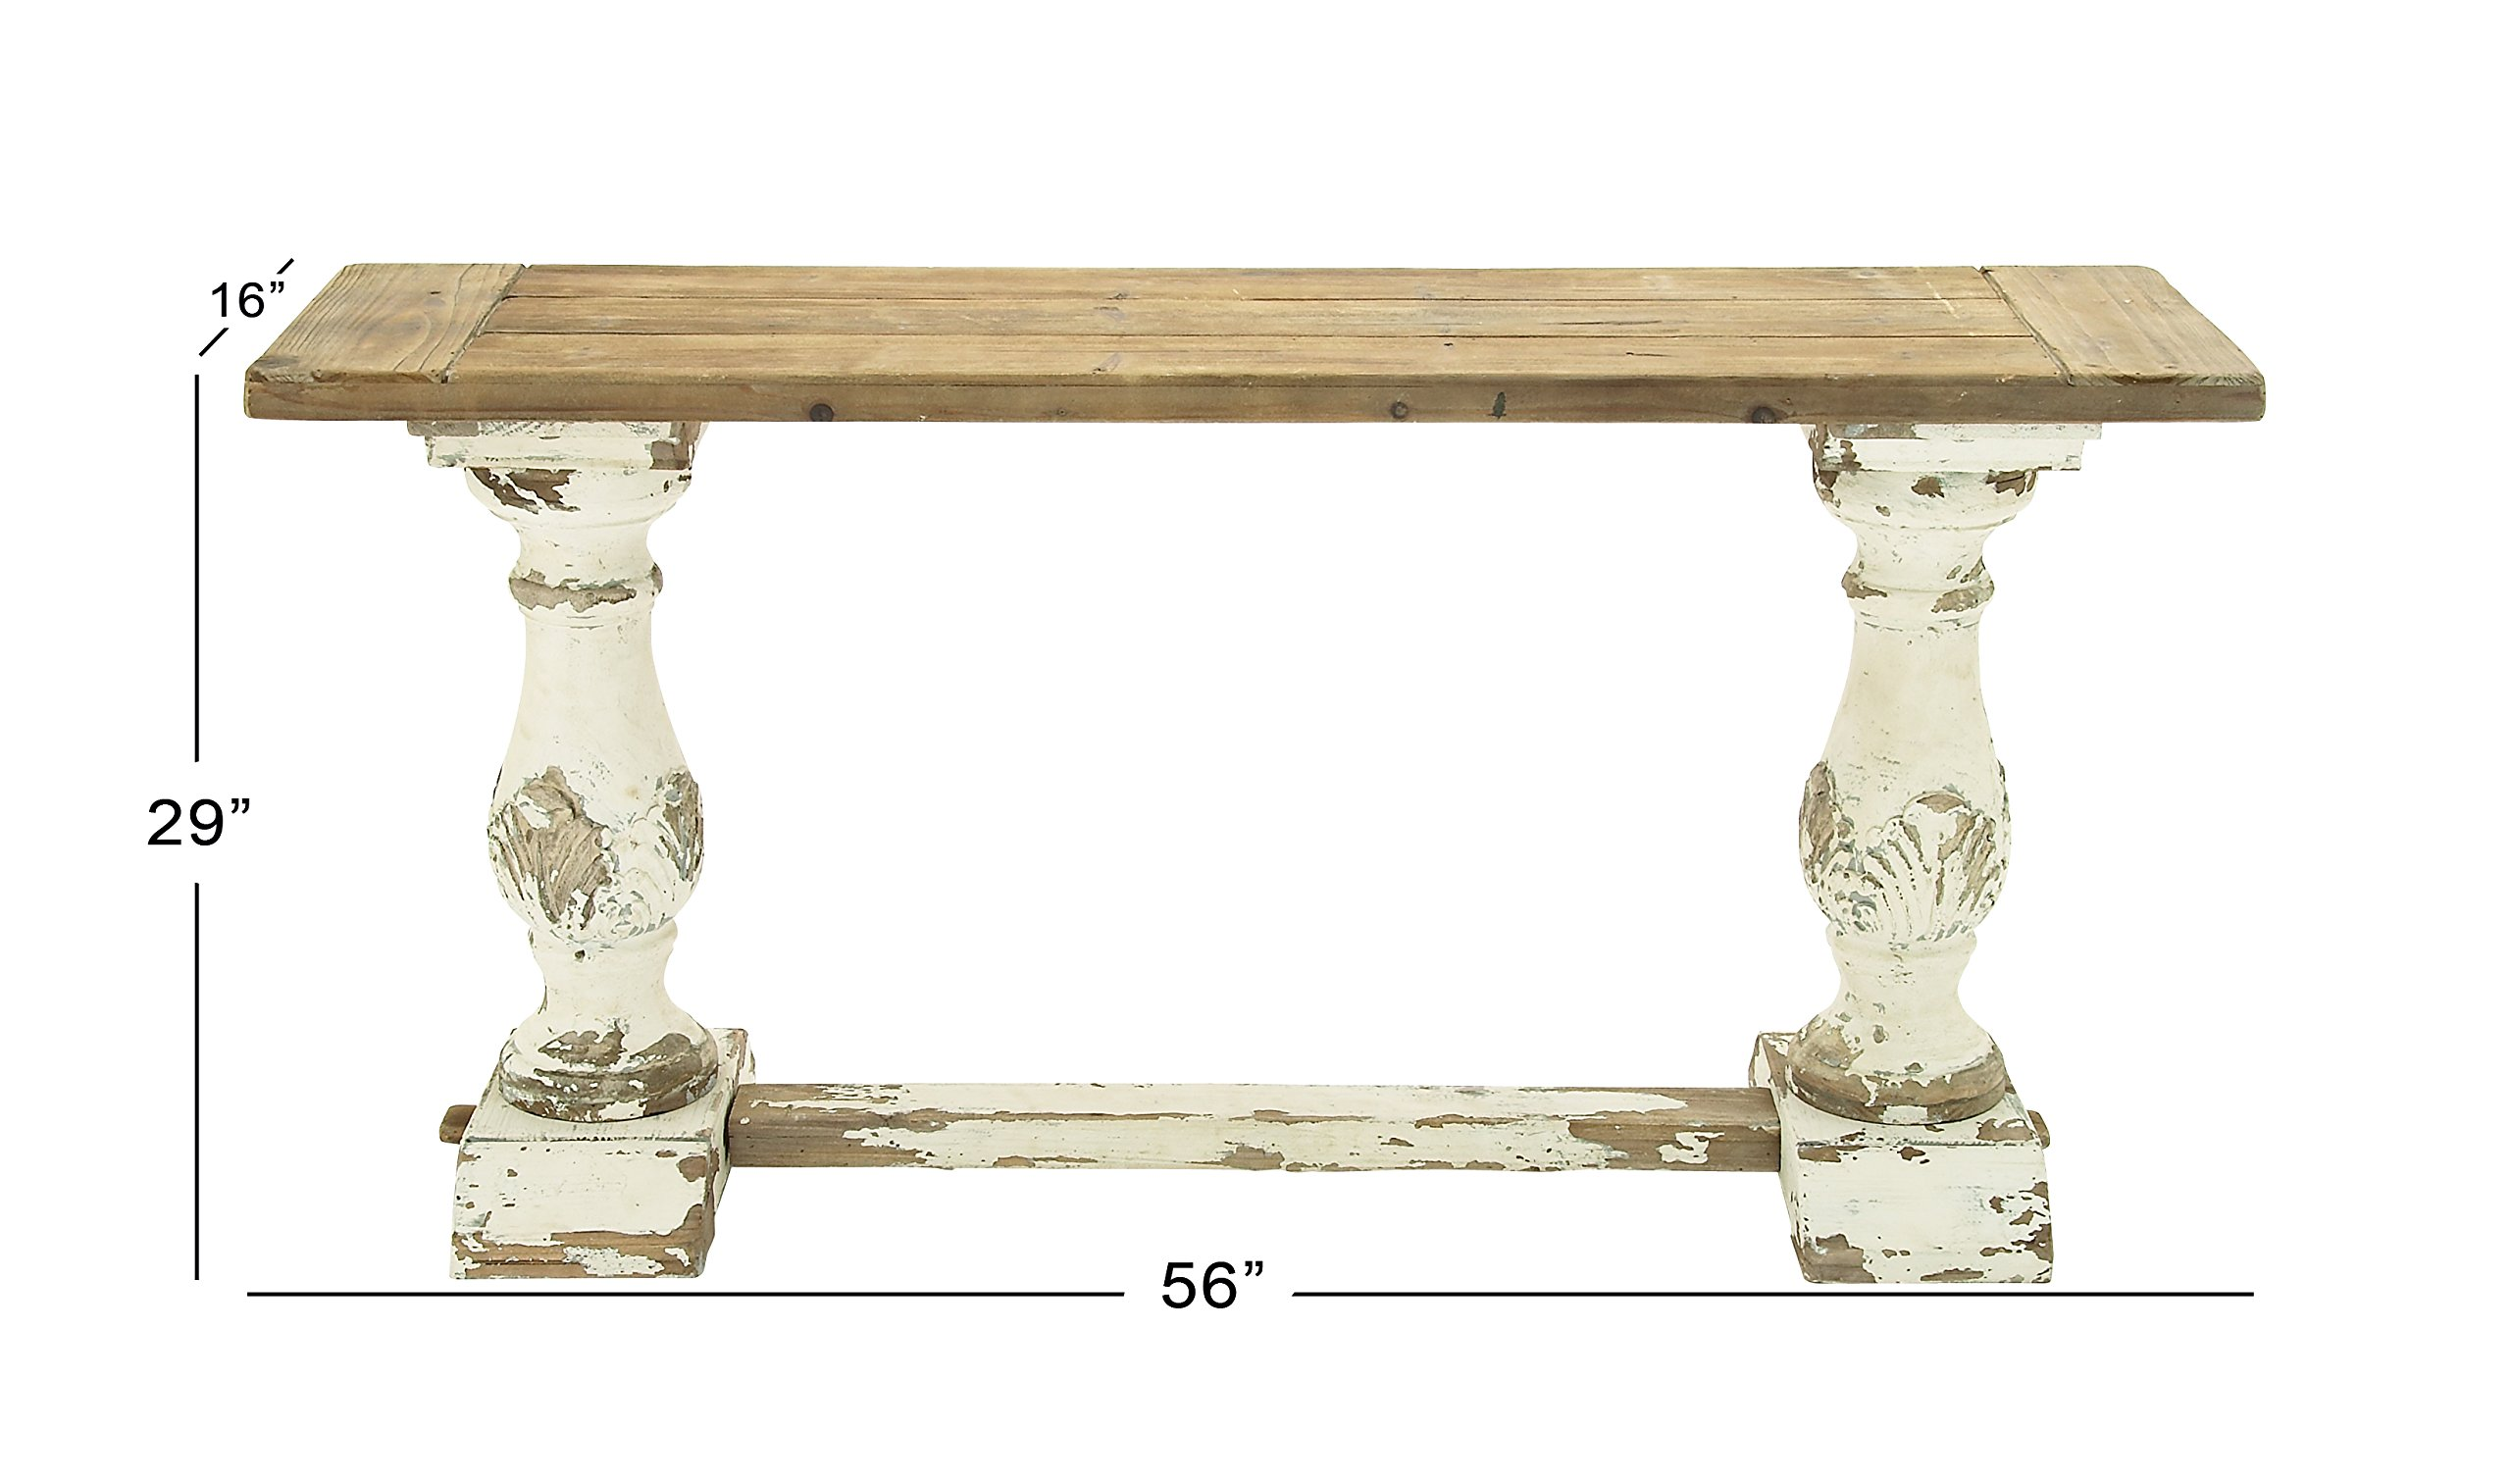 Deco 79 14840 Wood Console Table, 59'' x 29'' by Deco 79 (Image #4)